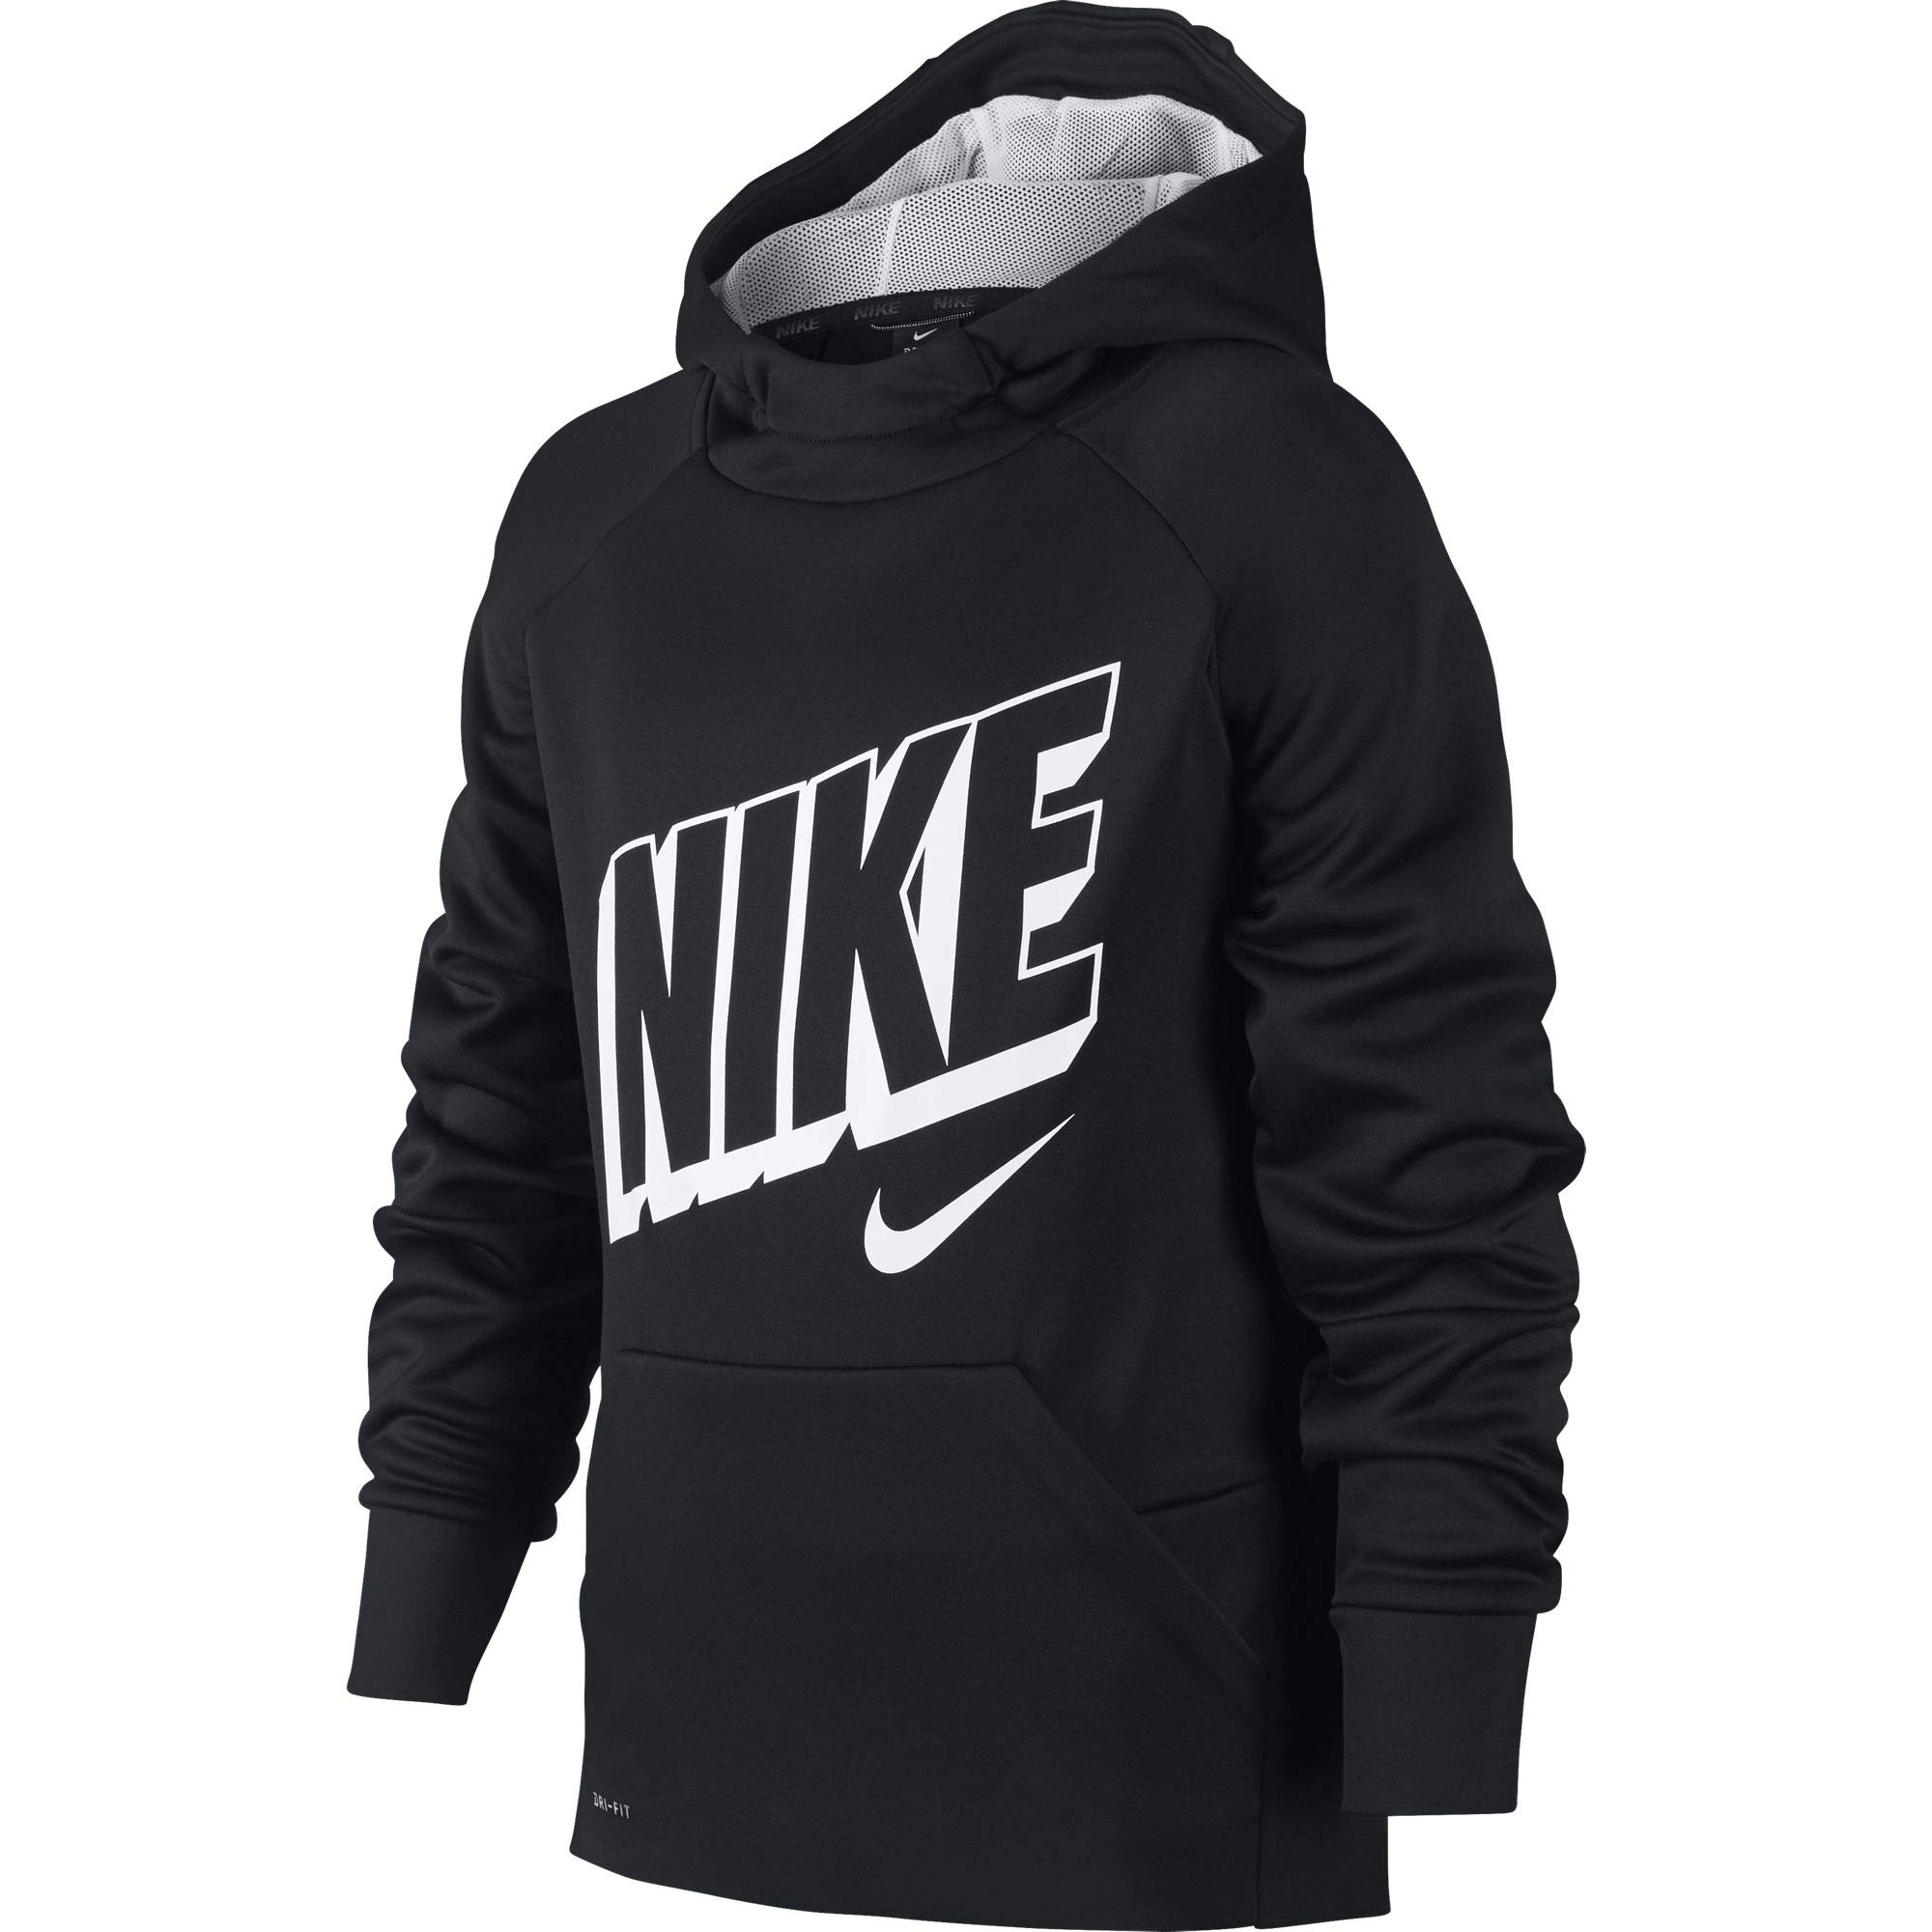 Nike Boy's Therma Graphic Training Pullover Hoodie Black/Wolf Grey/White Size Small